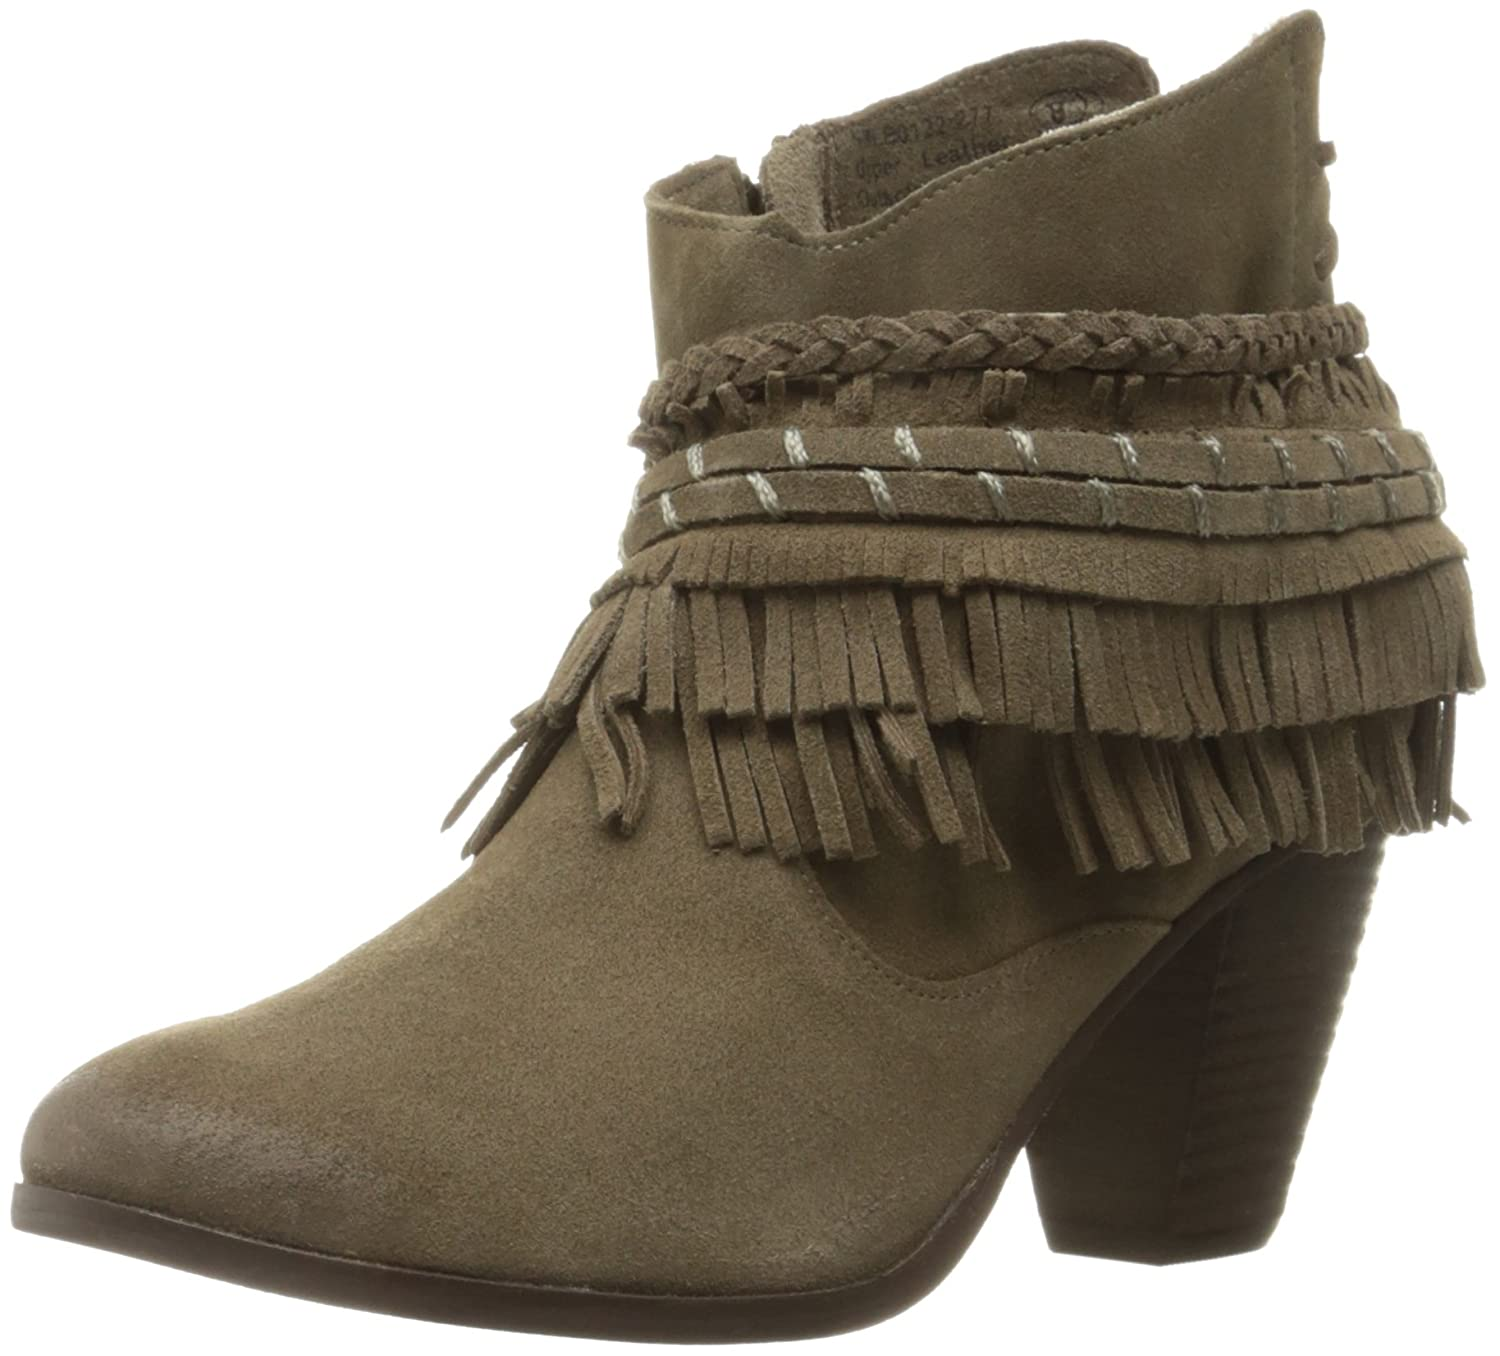 Naughty Monkey Women's in Lyne Ankle Bootie B01H3G9IB0 9 B(M) US Taupe